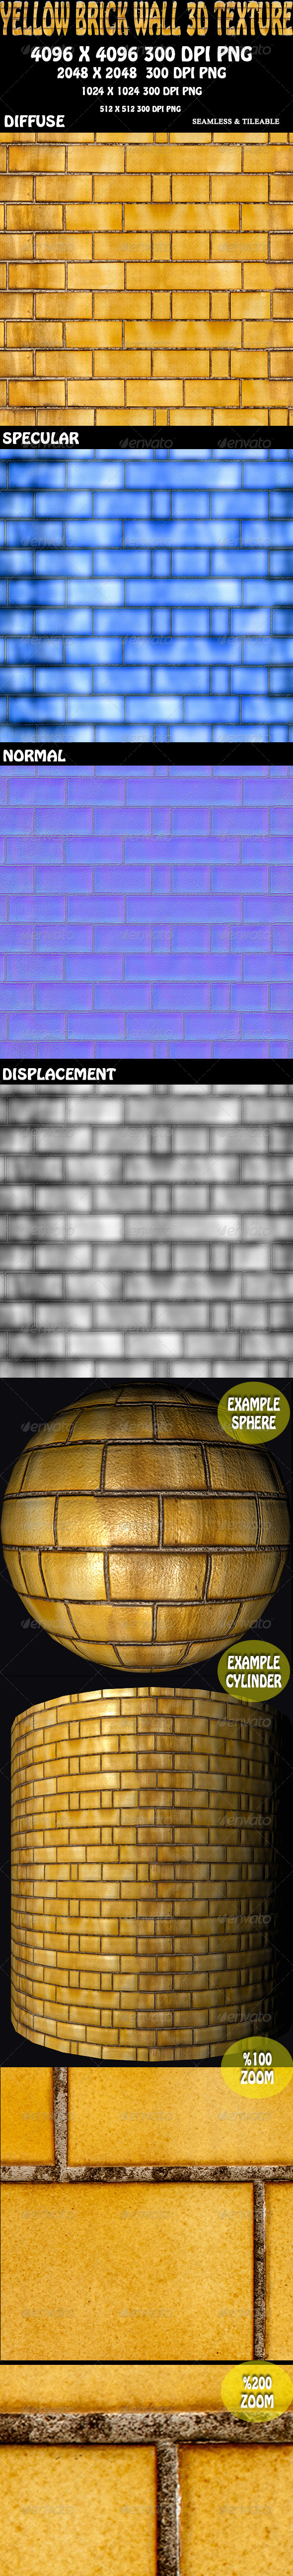 Yellow Brick Wall 3D Texture - 3DOcean Item for Sale